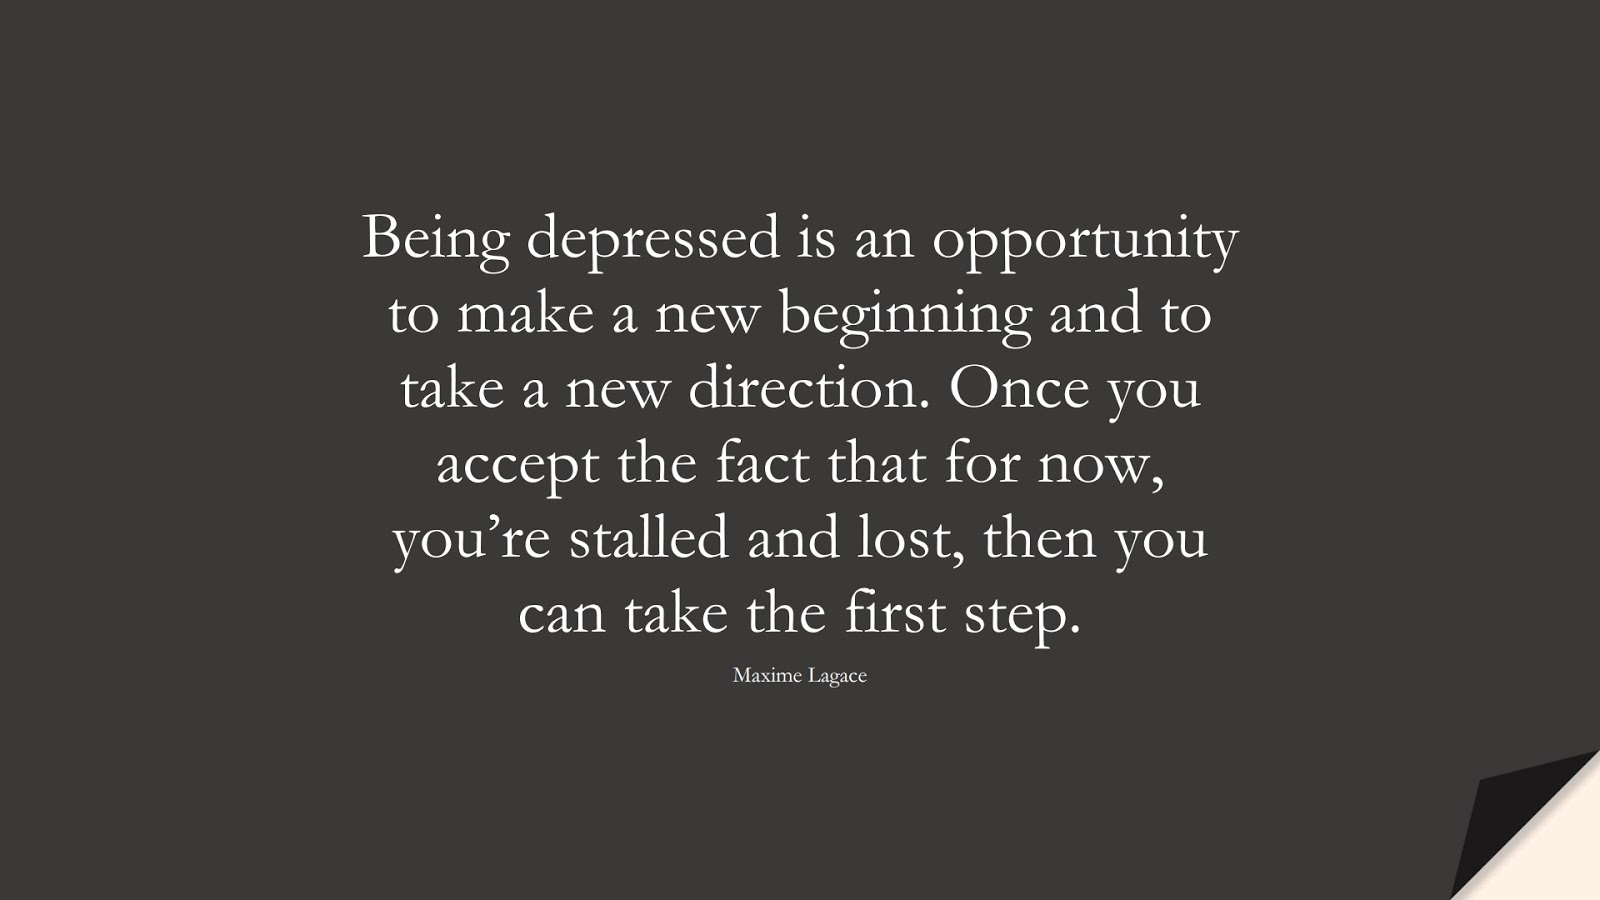 Being depressed is an opportunity to make a new beginning and to take a new direction. Once you accept the fact that for now, you're stalled and lost, then you can take the first step. (Maxime Lagace);  #DepressionQuotes